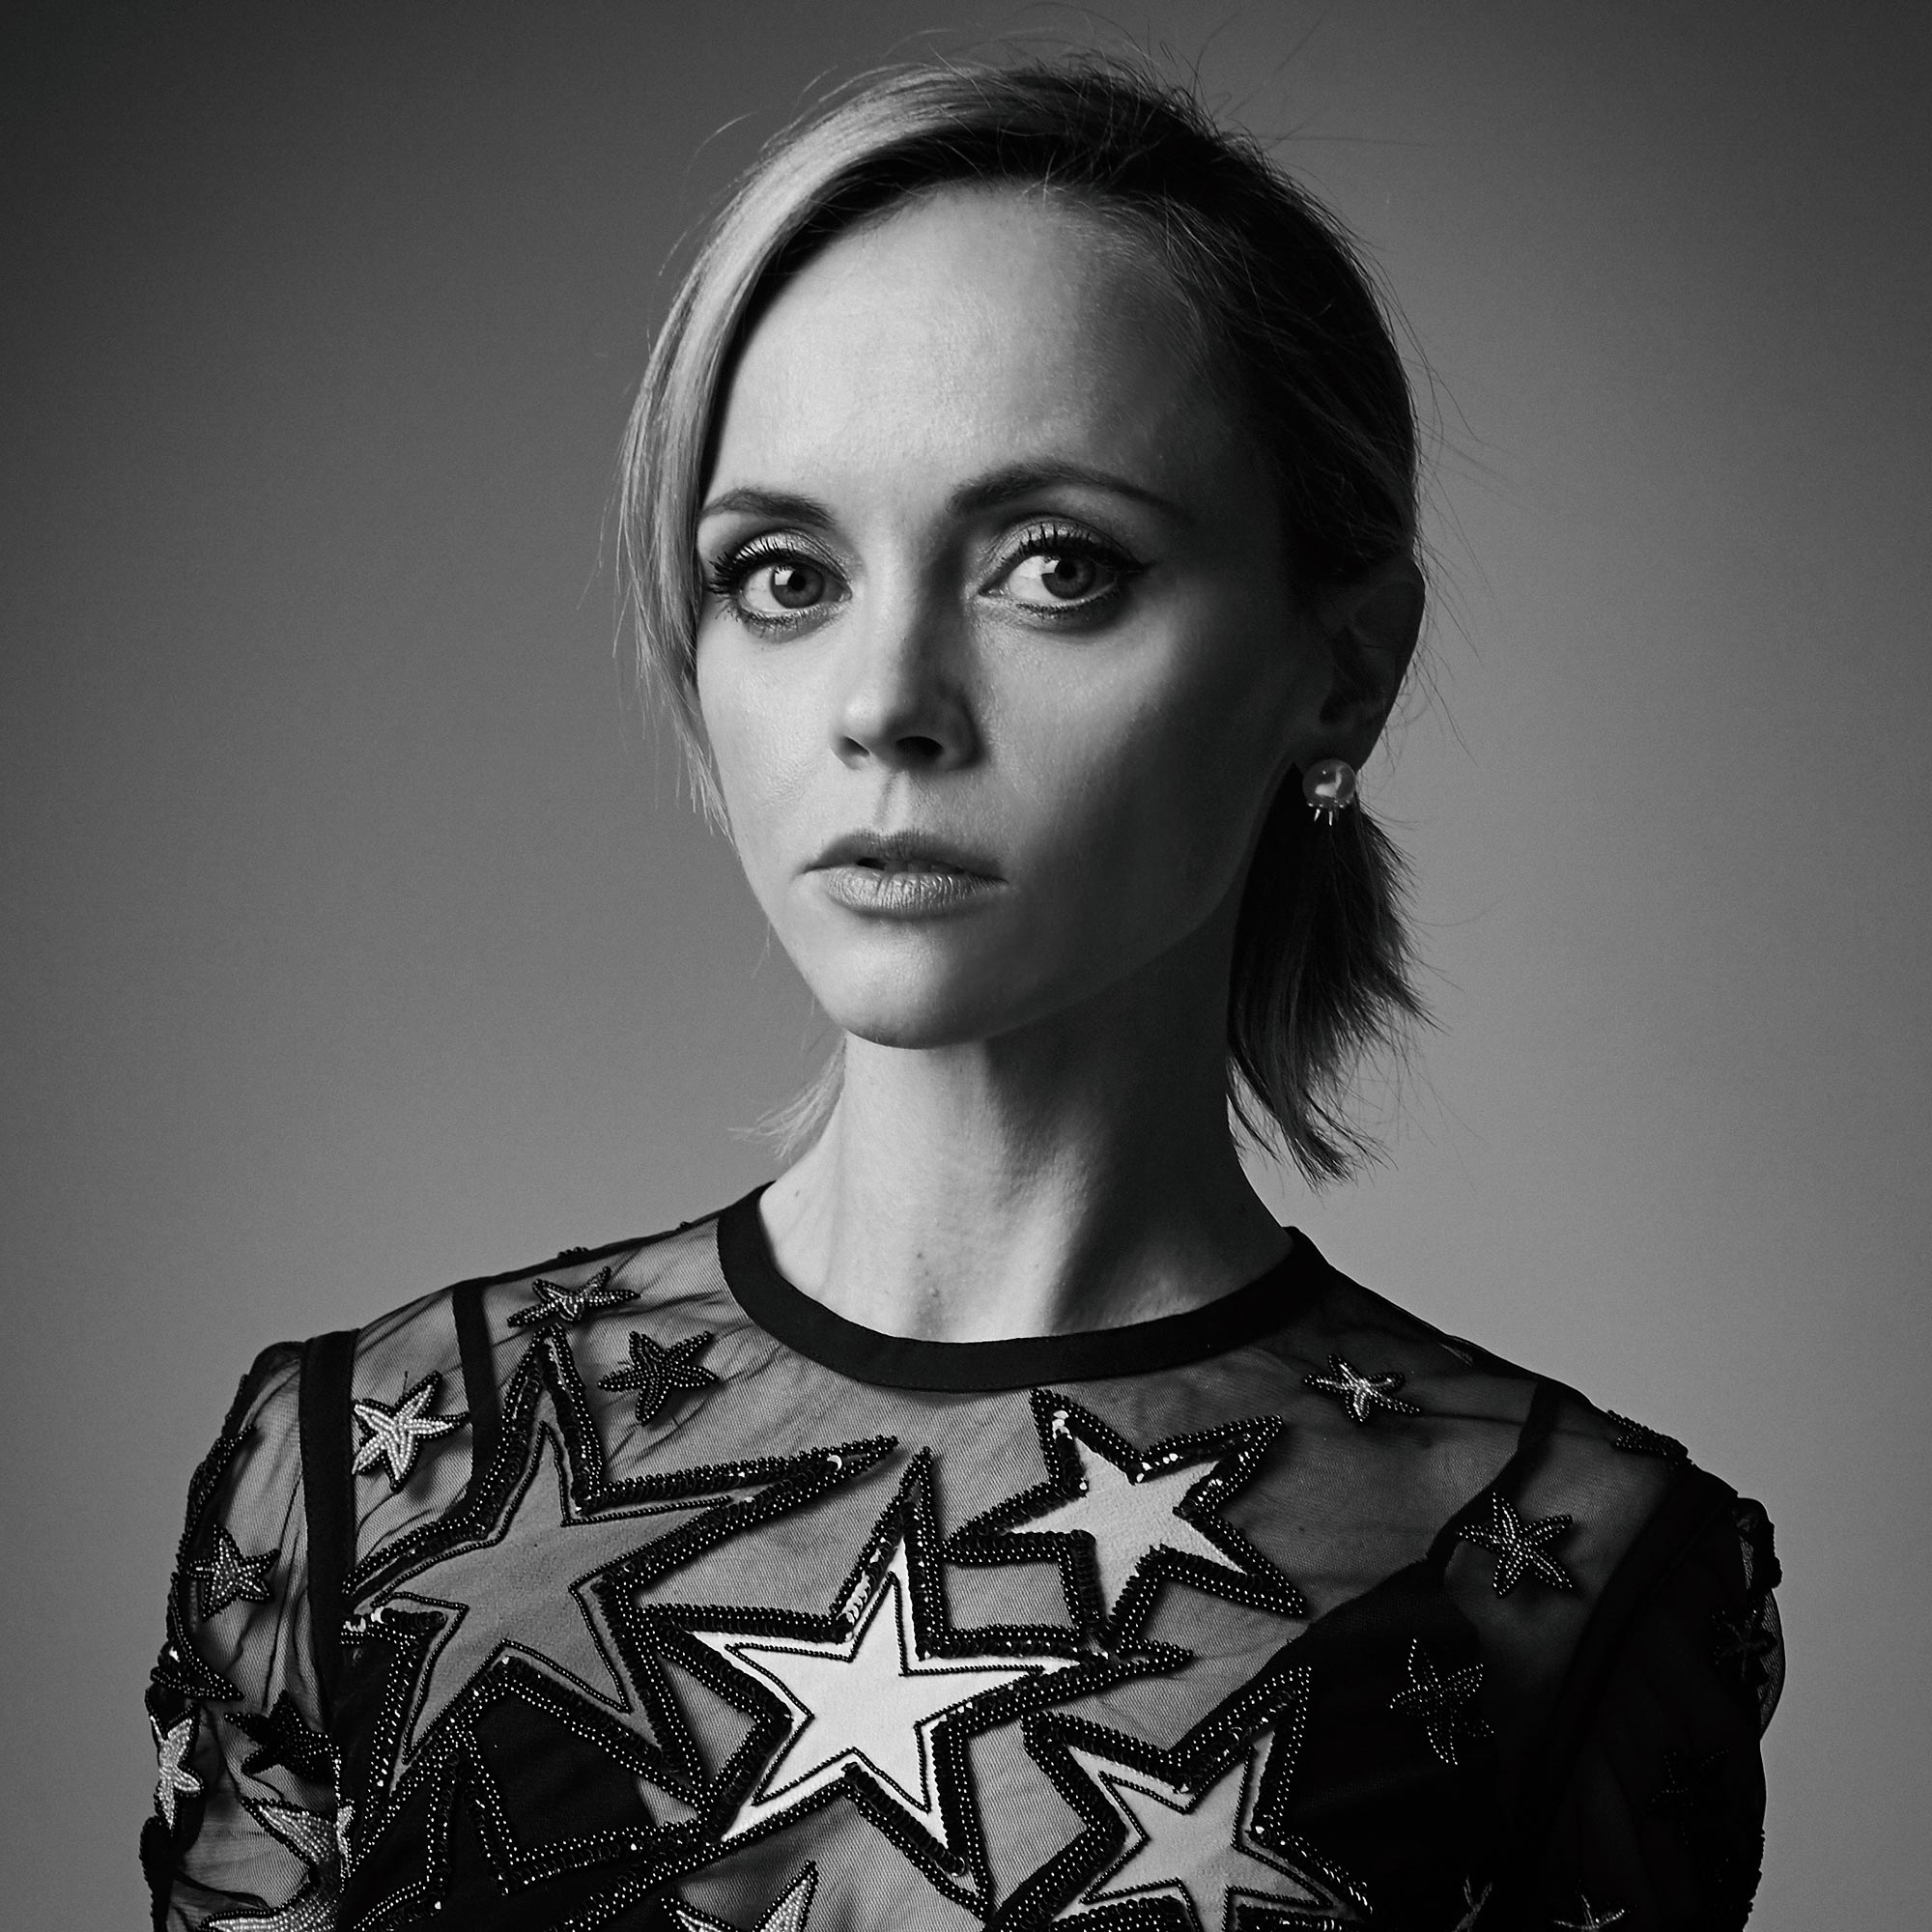 Christina Ricci Black and White Portrait